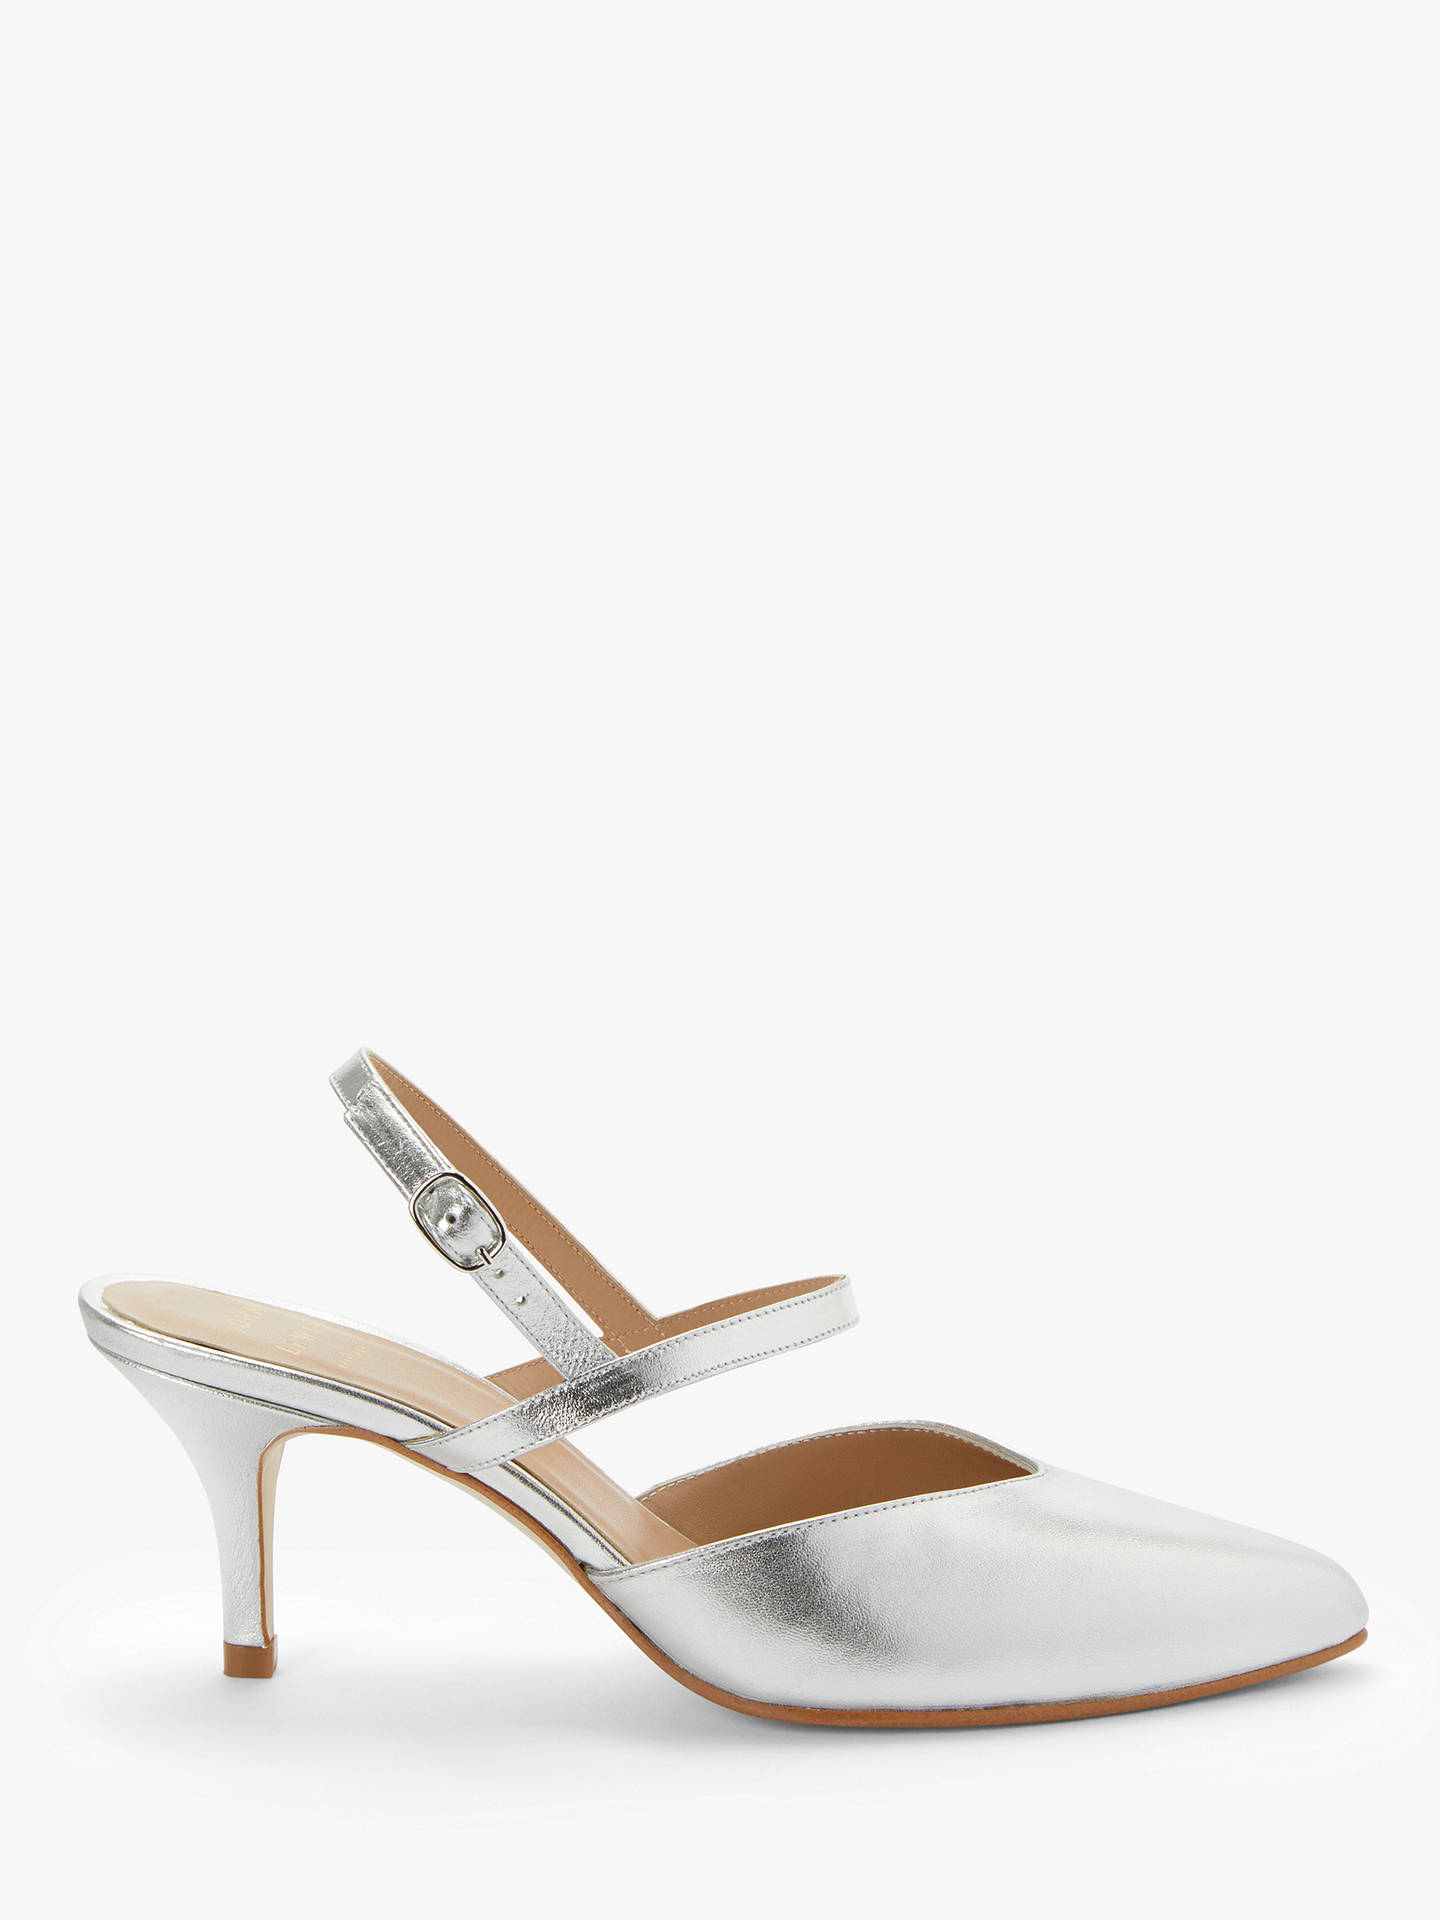 304624f5a42 John Lewis & Partners Brianna Ankle Strap Mid Heel Court Shoes, Silver  Leather, Silver Leather